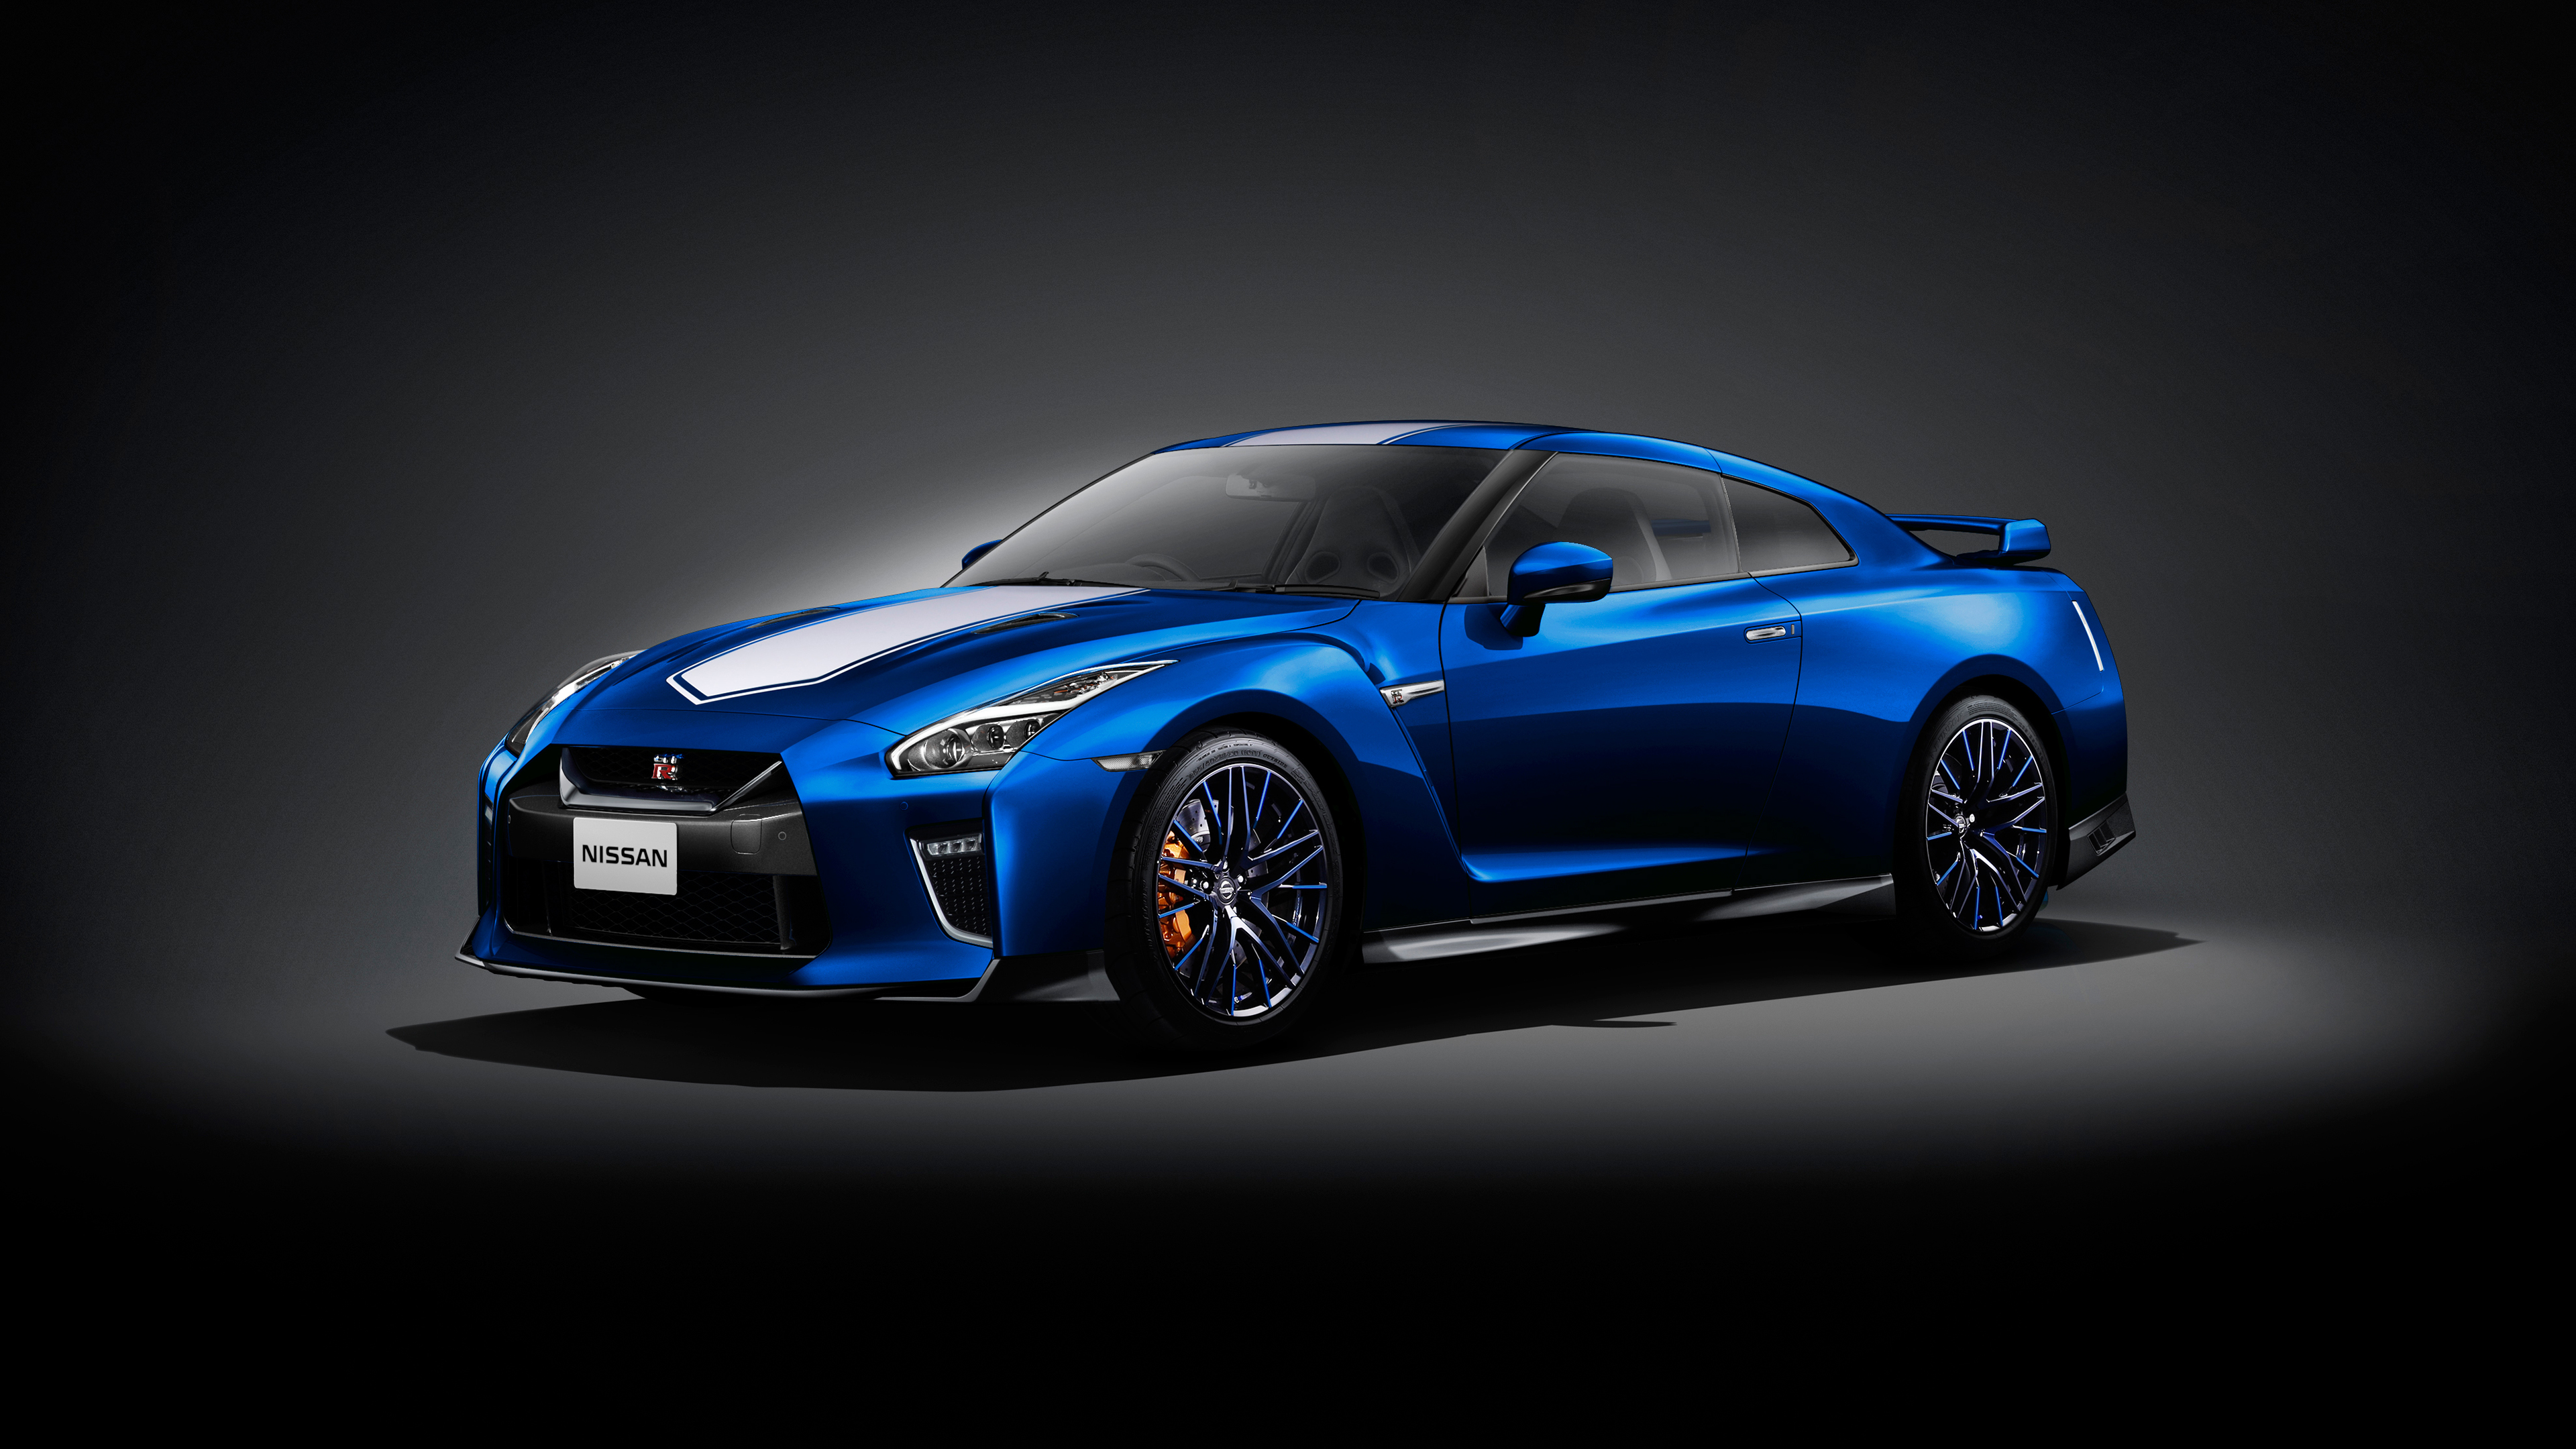 Nissan GT R 50th Anniversary 2019 4K Wallpapers HD Wallpapers 3840x2160